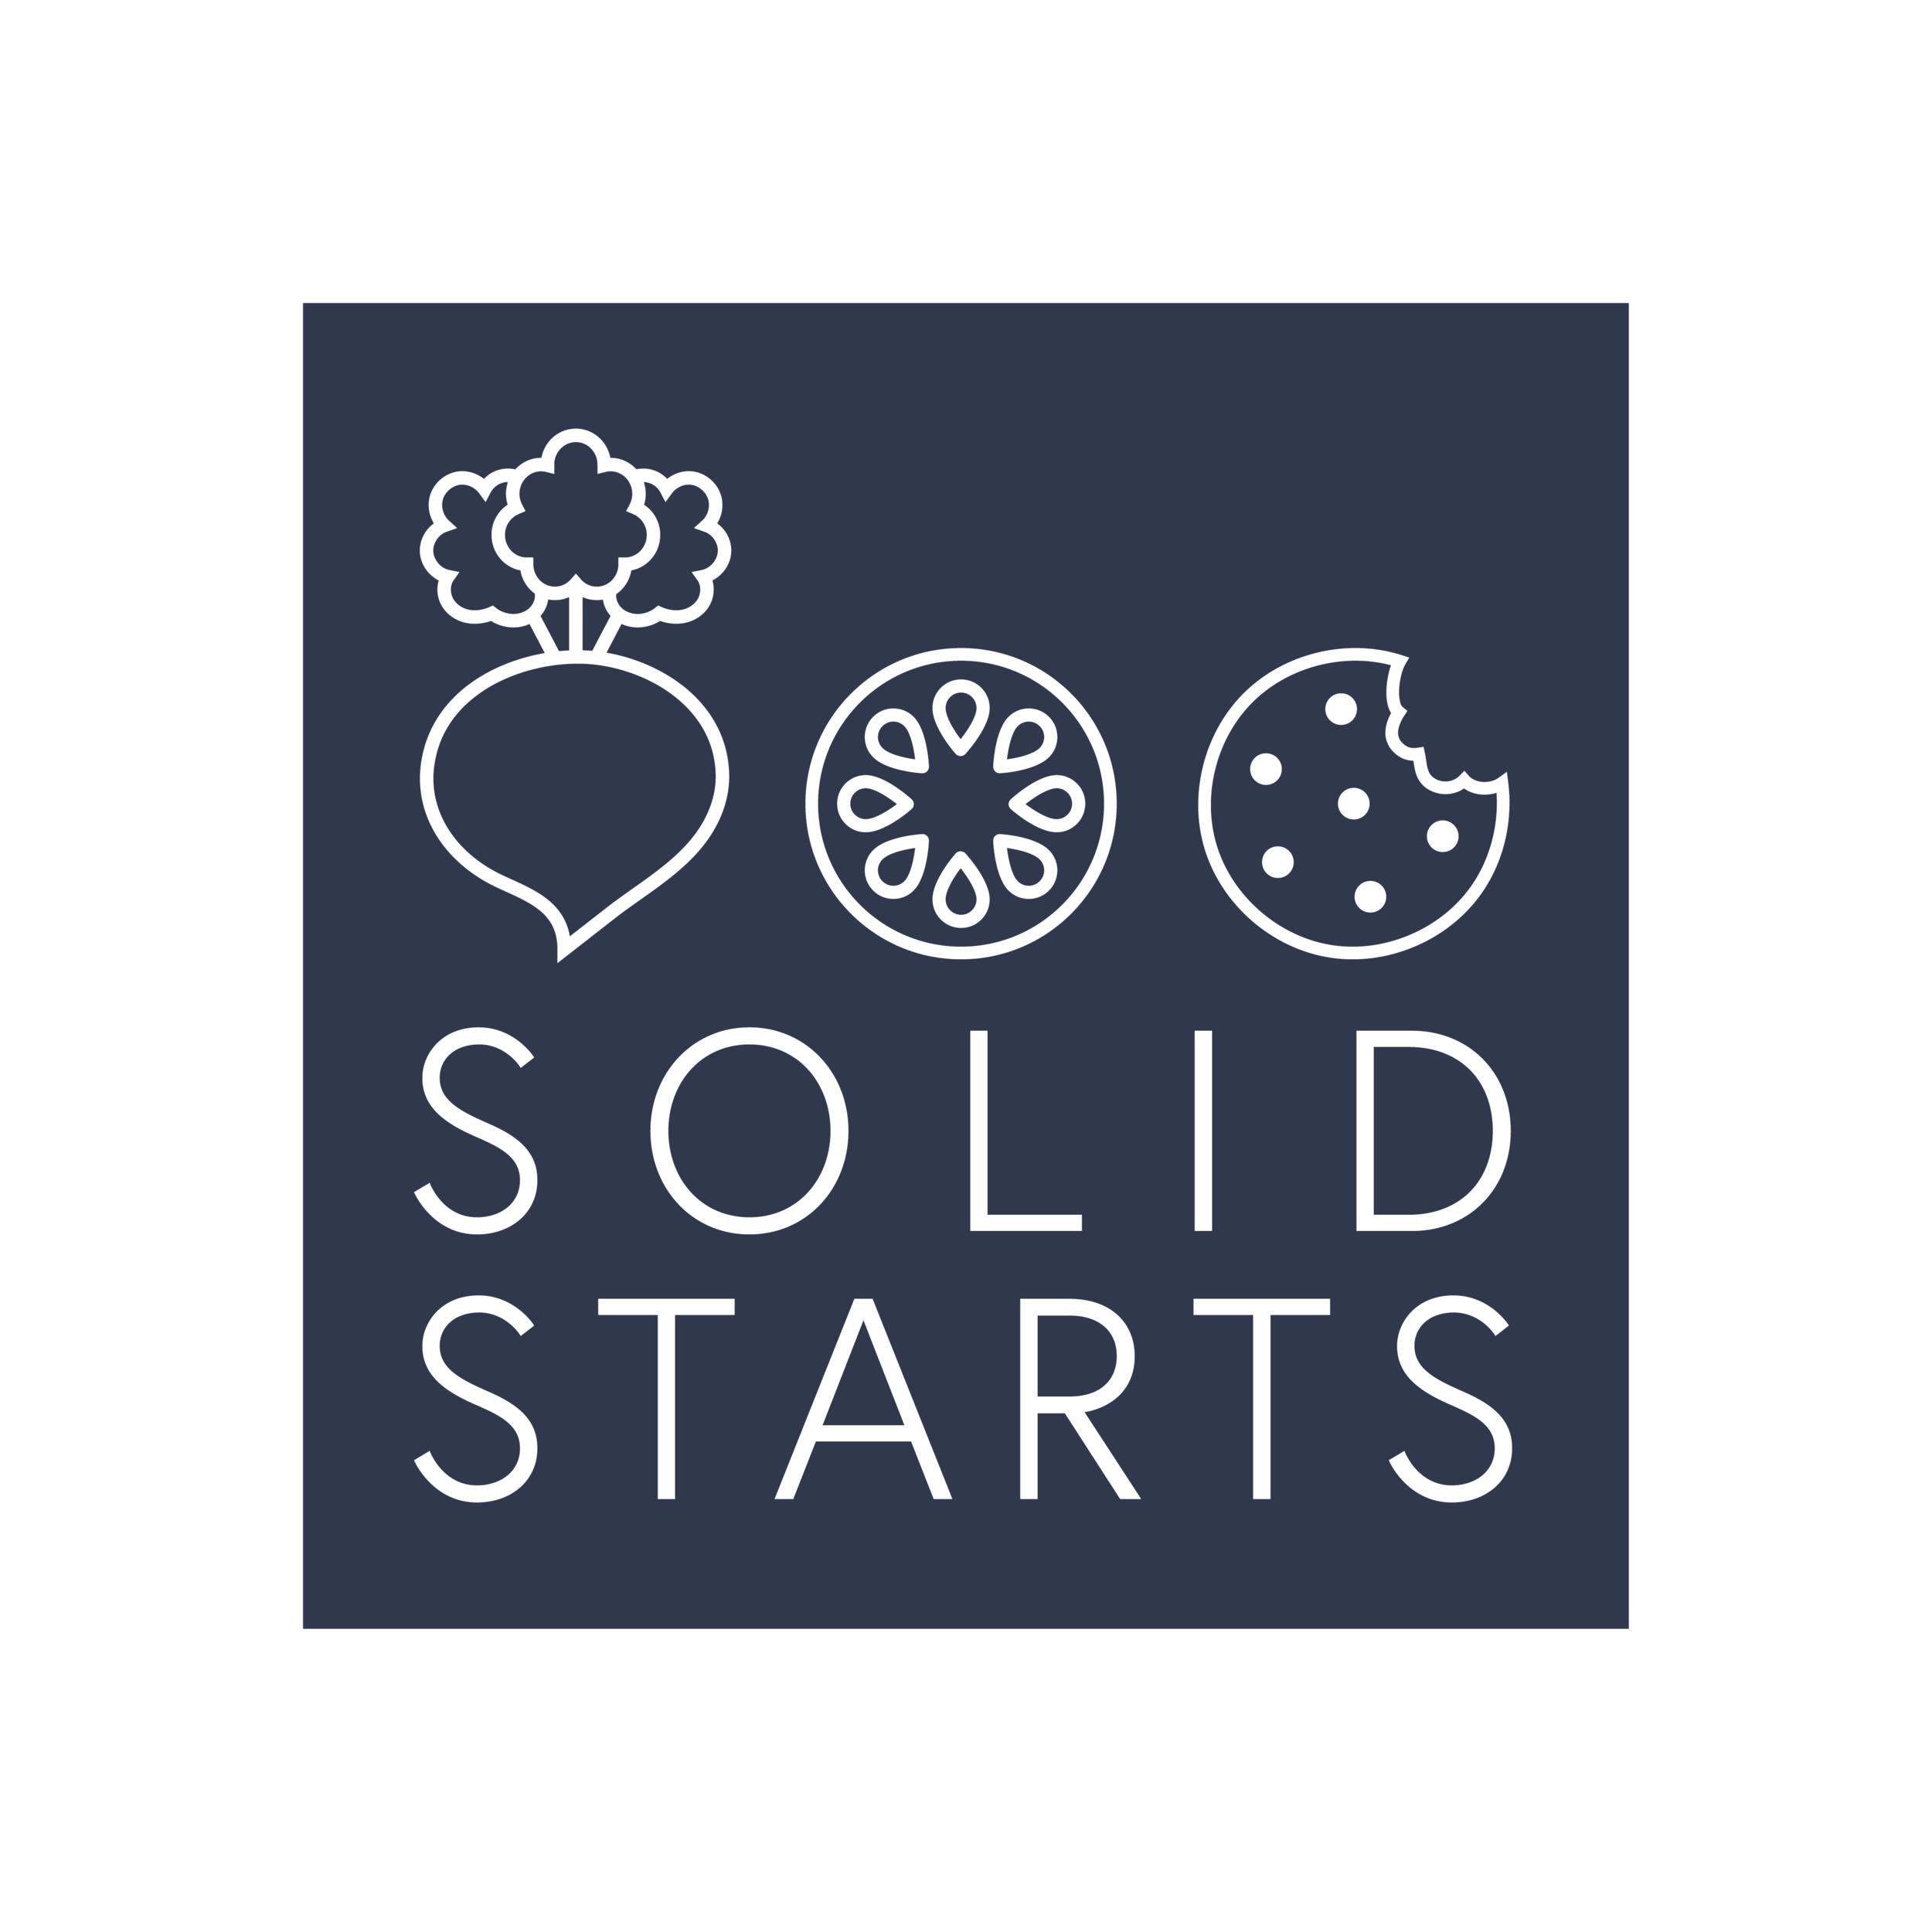 Comprehensive online resource for introducing solid foods to babies